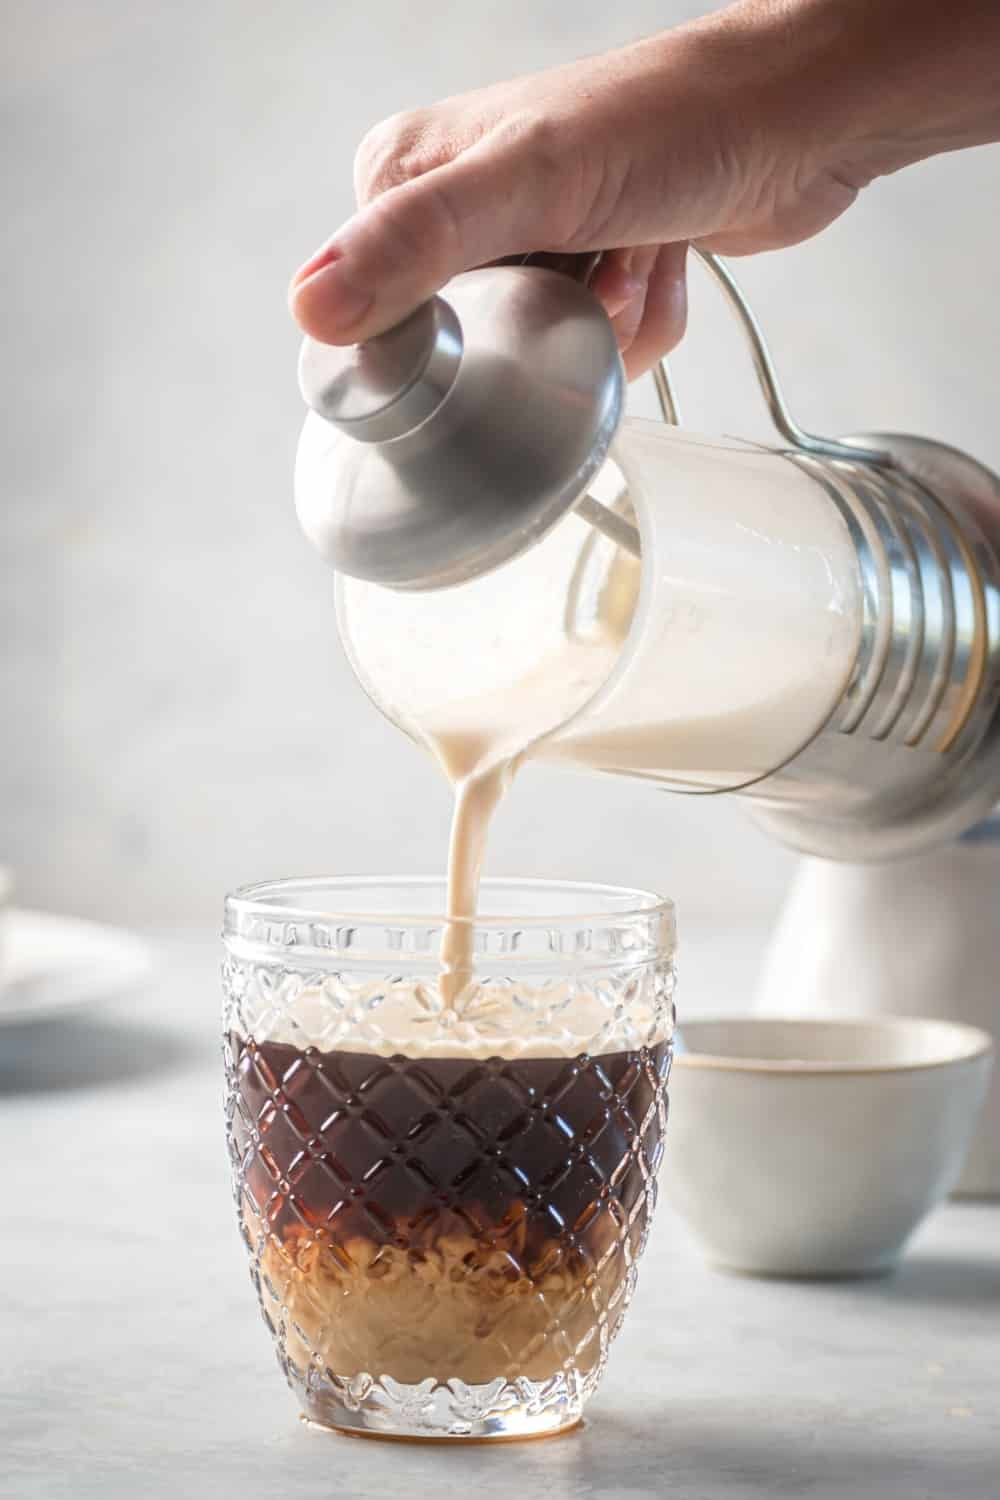 A glass cup of espresso and a gray counter. The hand is pouring sweet cream cold foam from the French press into the cup.